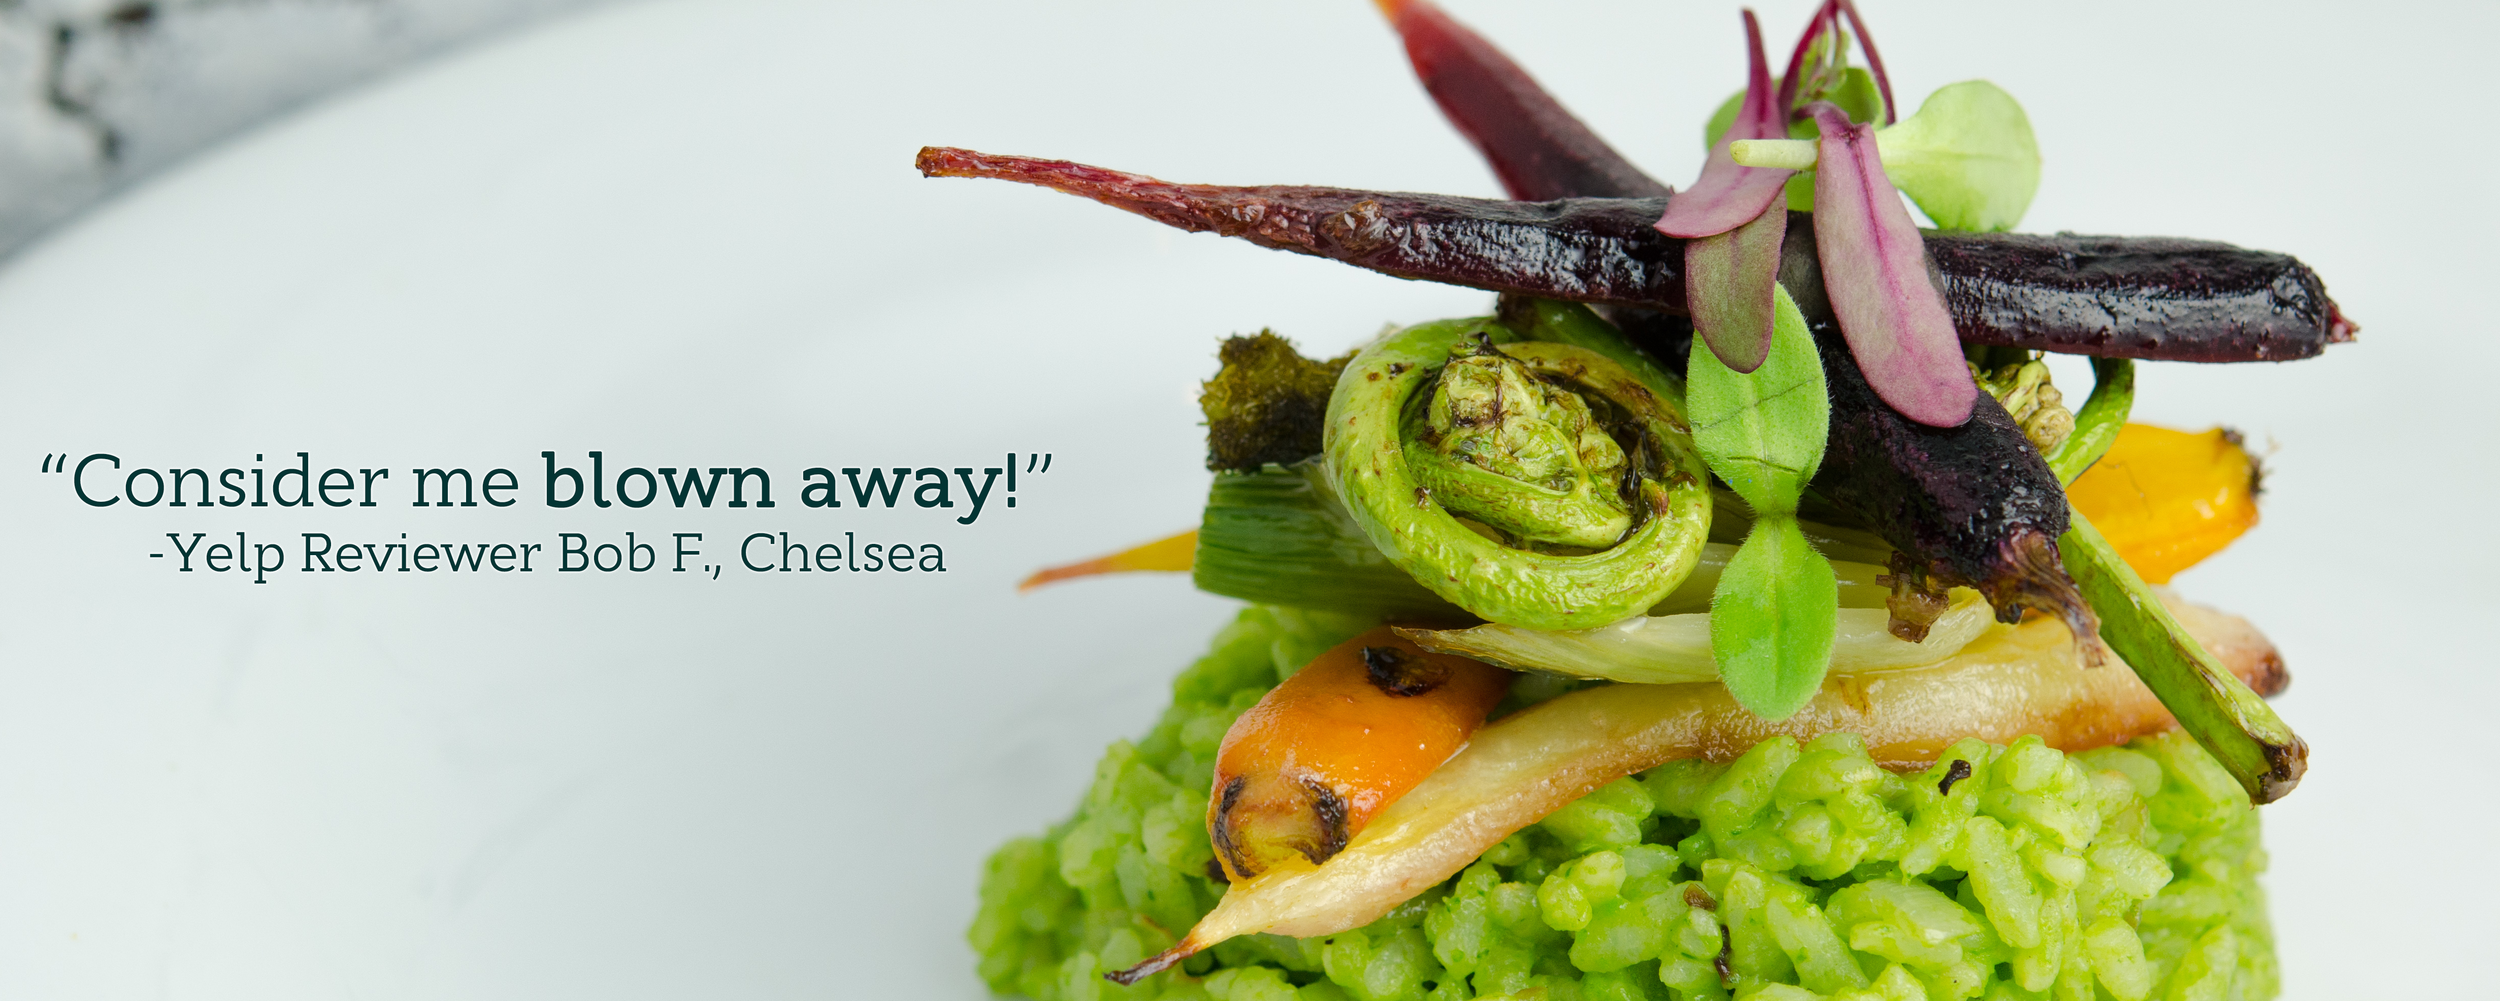 Fiddlehead with Quote.png